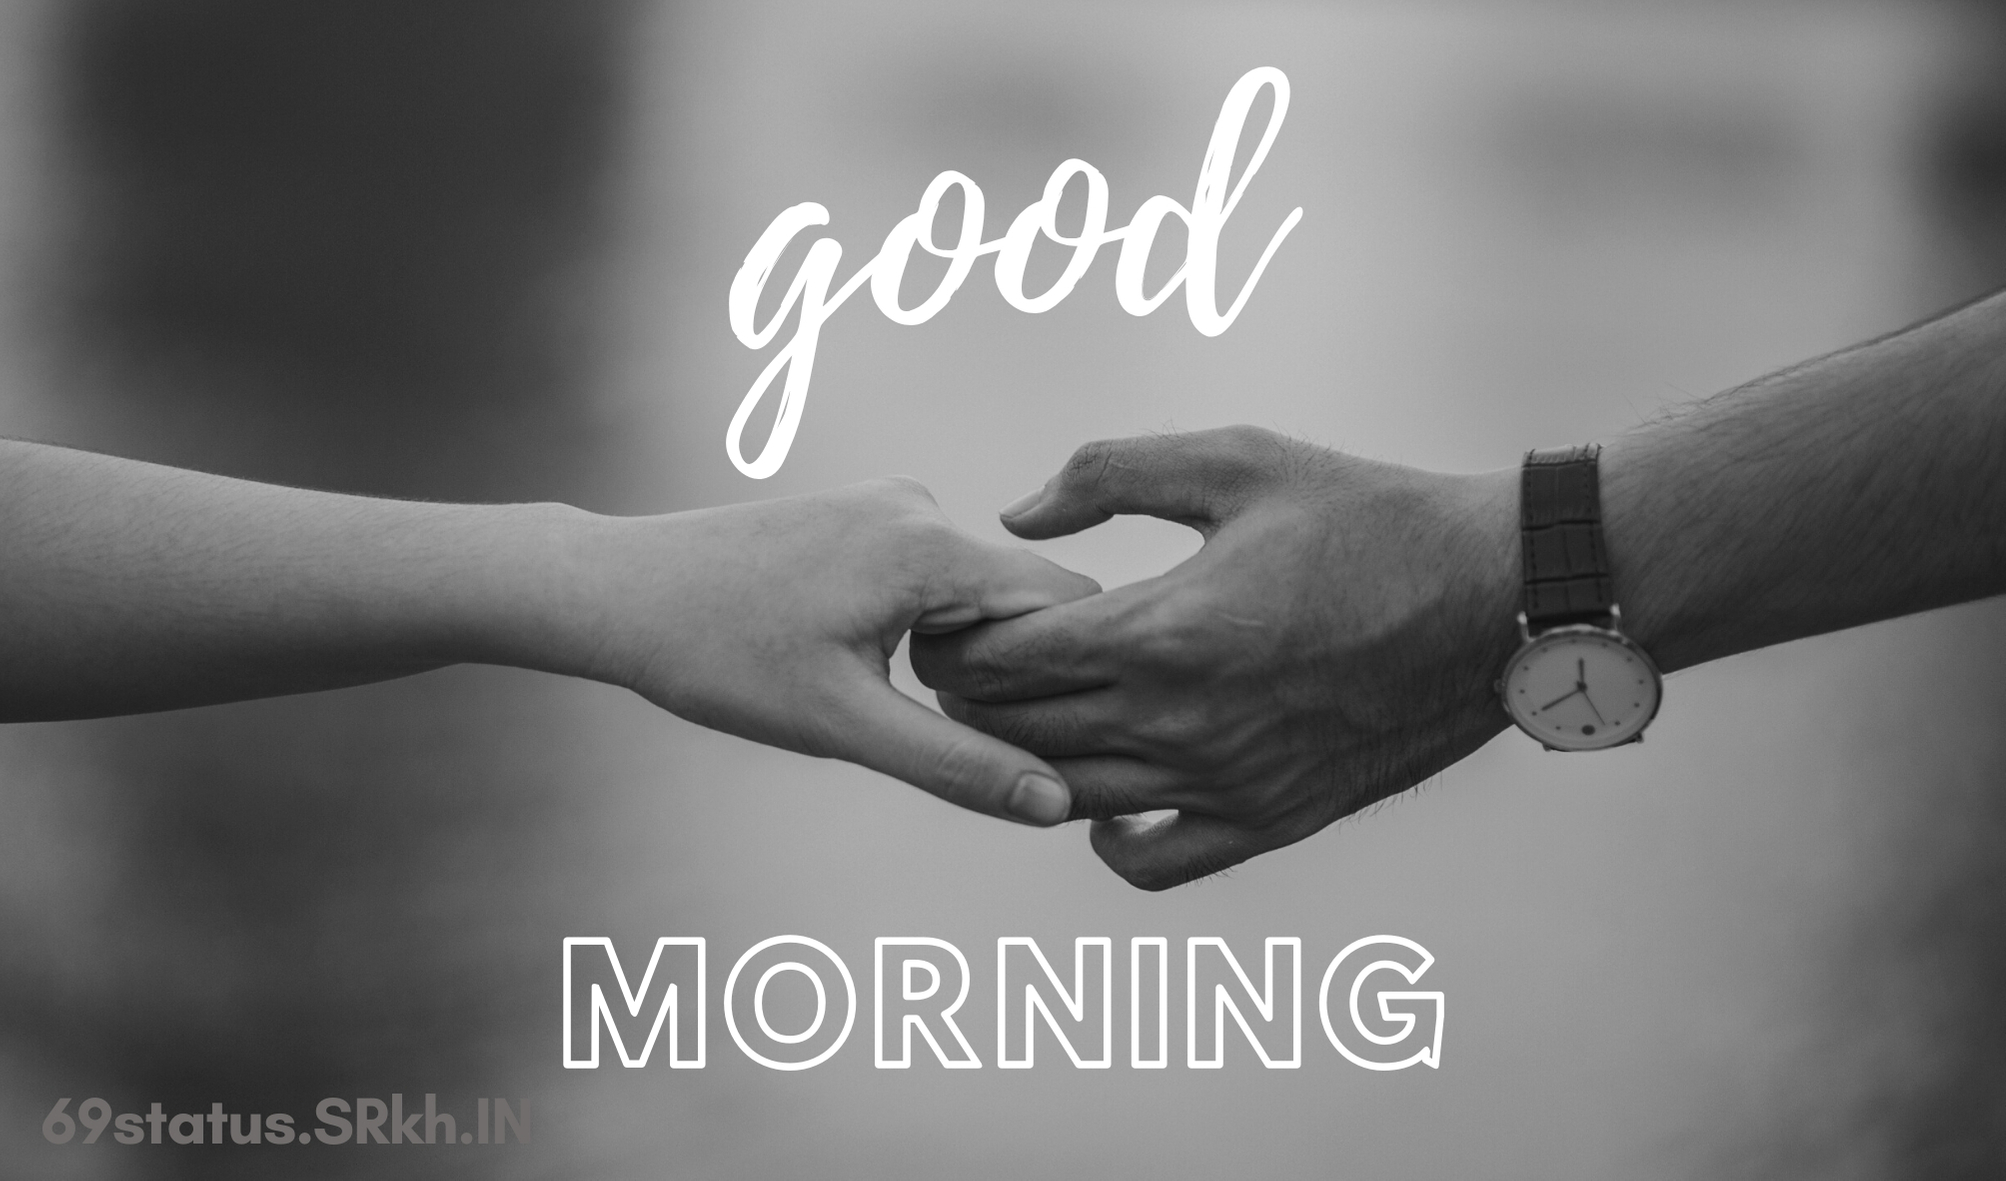 Good Morning Couple Hand Shake Love Image full HD free download.